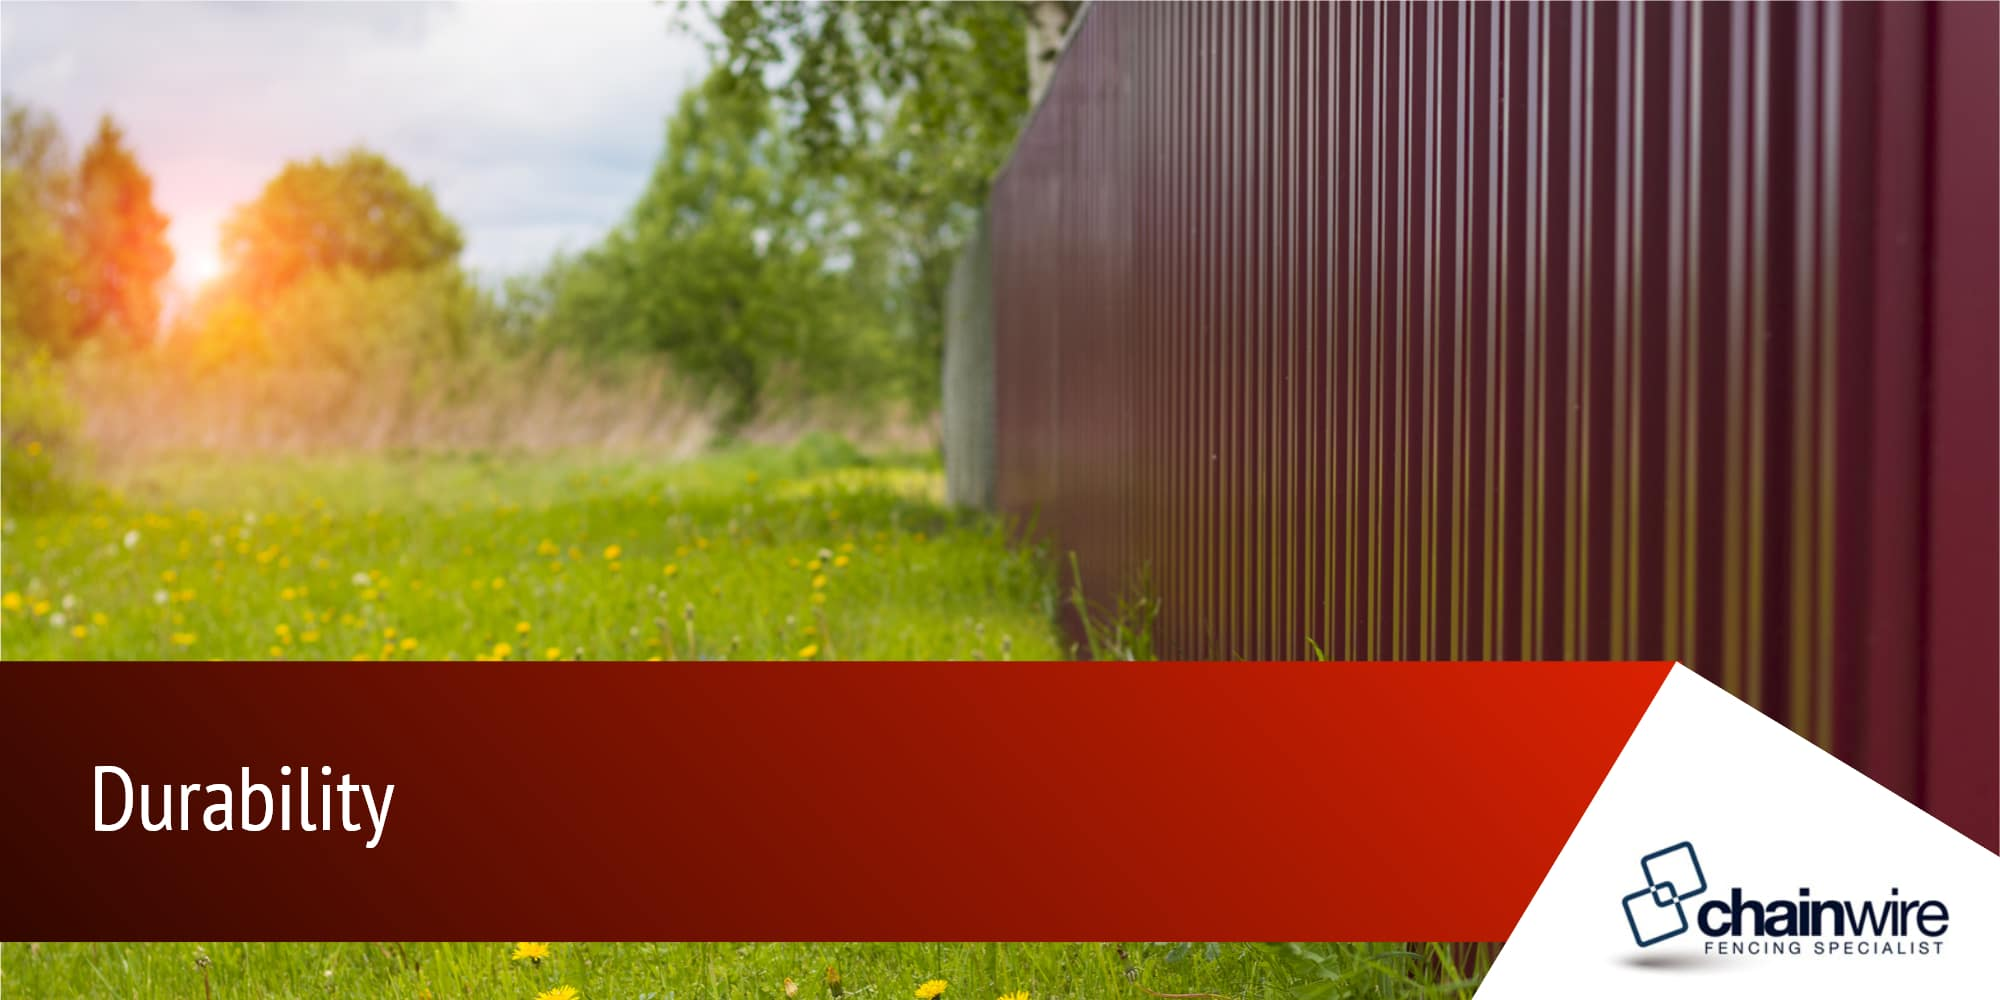 What are Powder Coated Aluminium Fences? - Chainwire Fencing Specialist